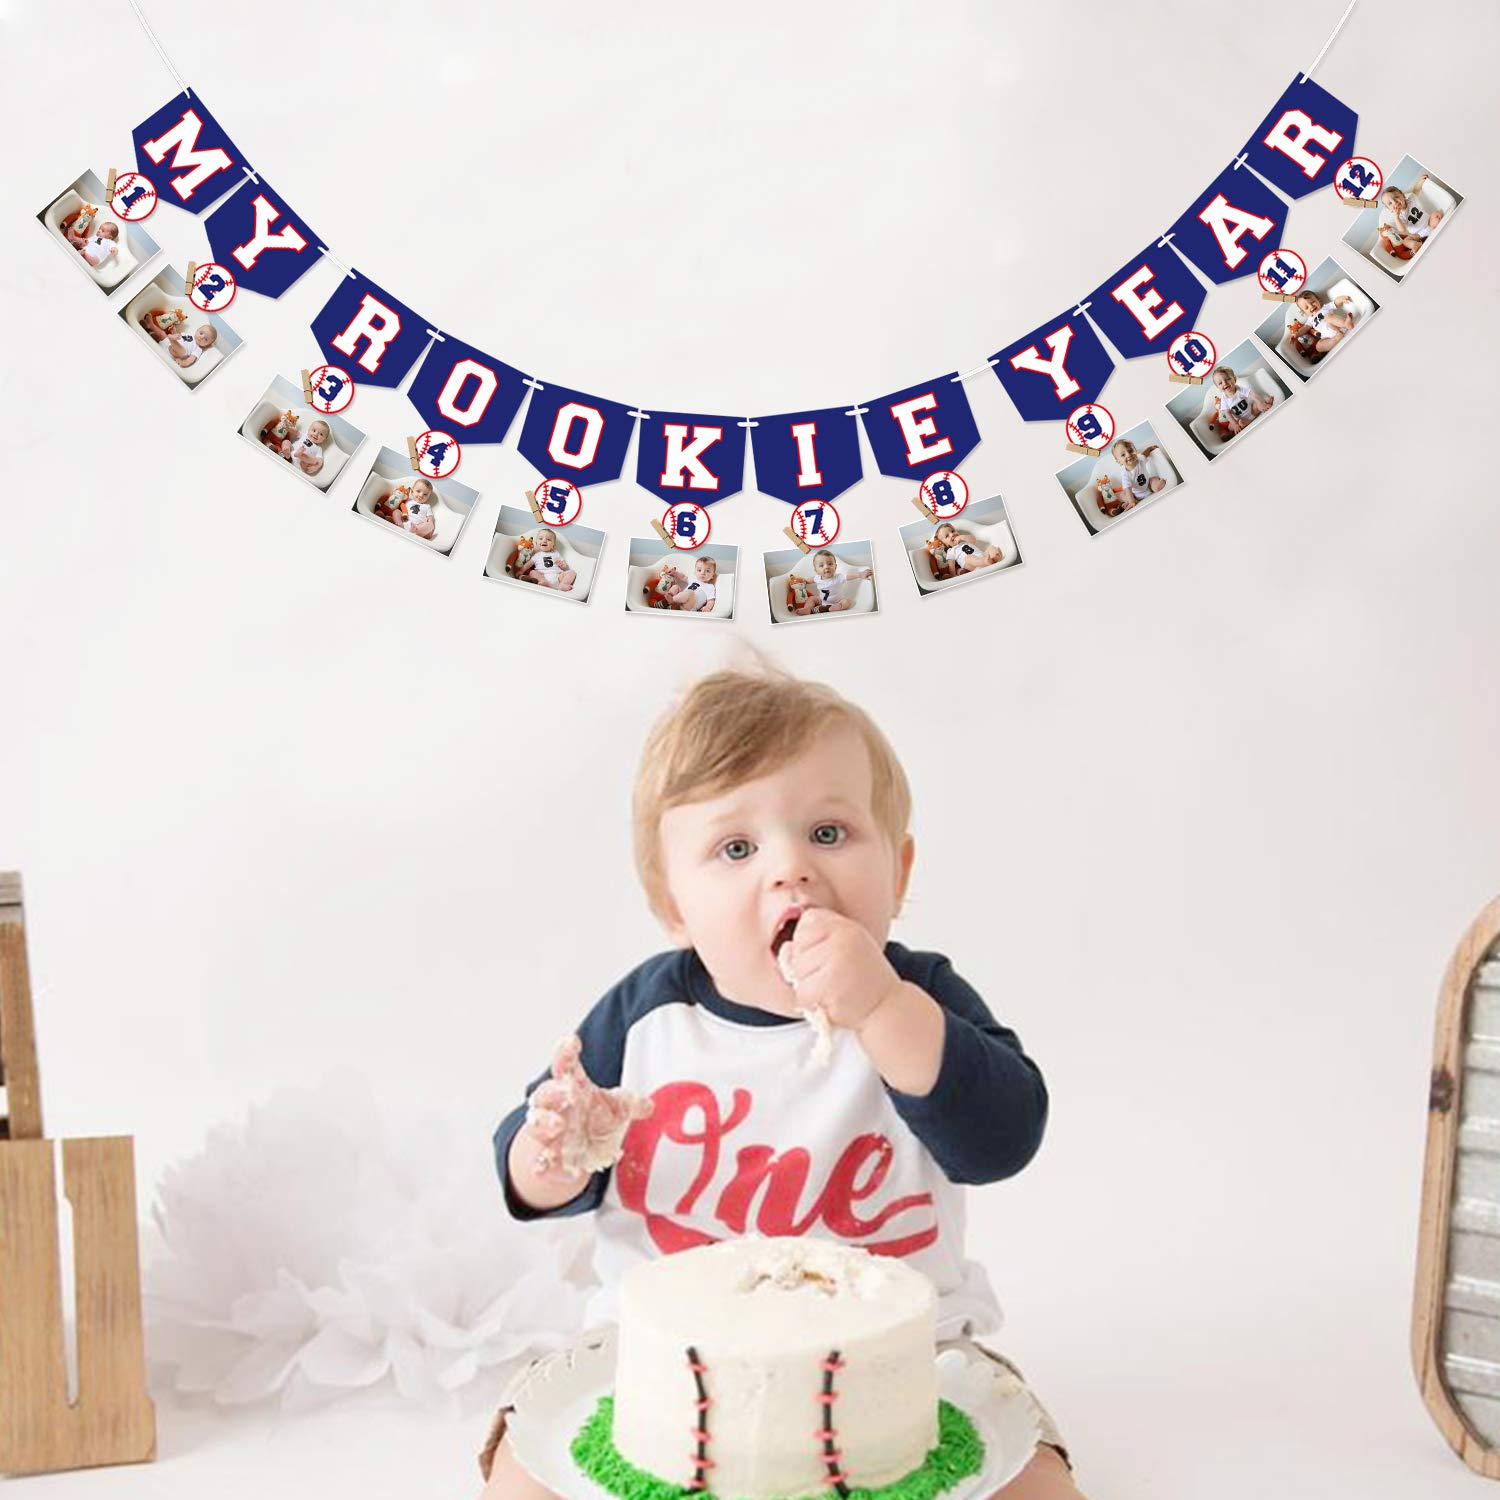 Baseball 1st Birthday Monthly Photo Banner Baseball Theme First Year Photo Banner My Rookie Year Banner for First Birthday Party Decorations Baby Shower Supplies